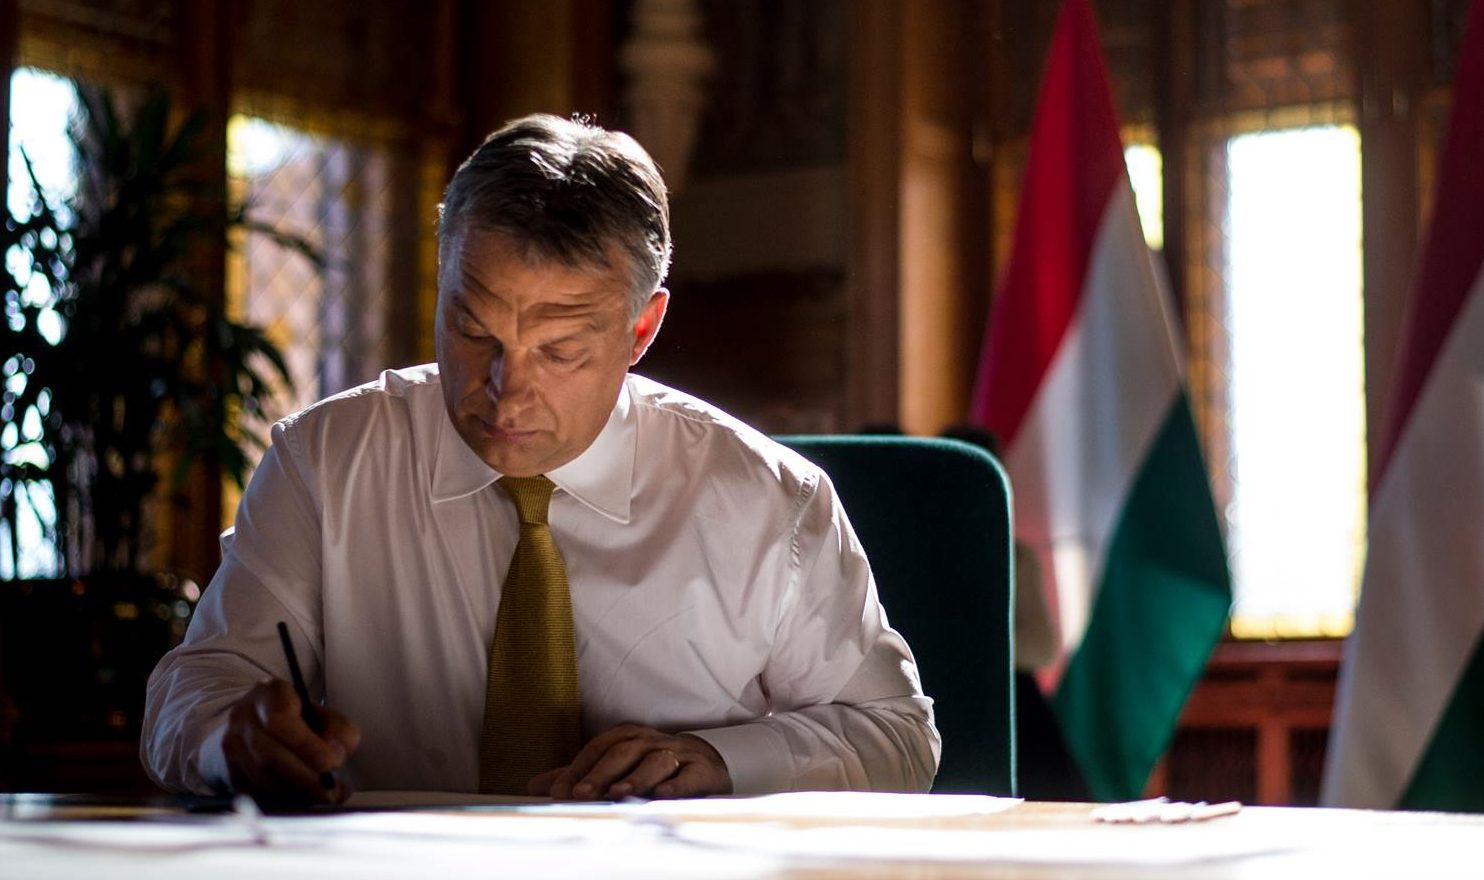 Orbán Offers Hungary's Assistance to Earthquake-Hit Croatia